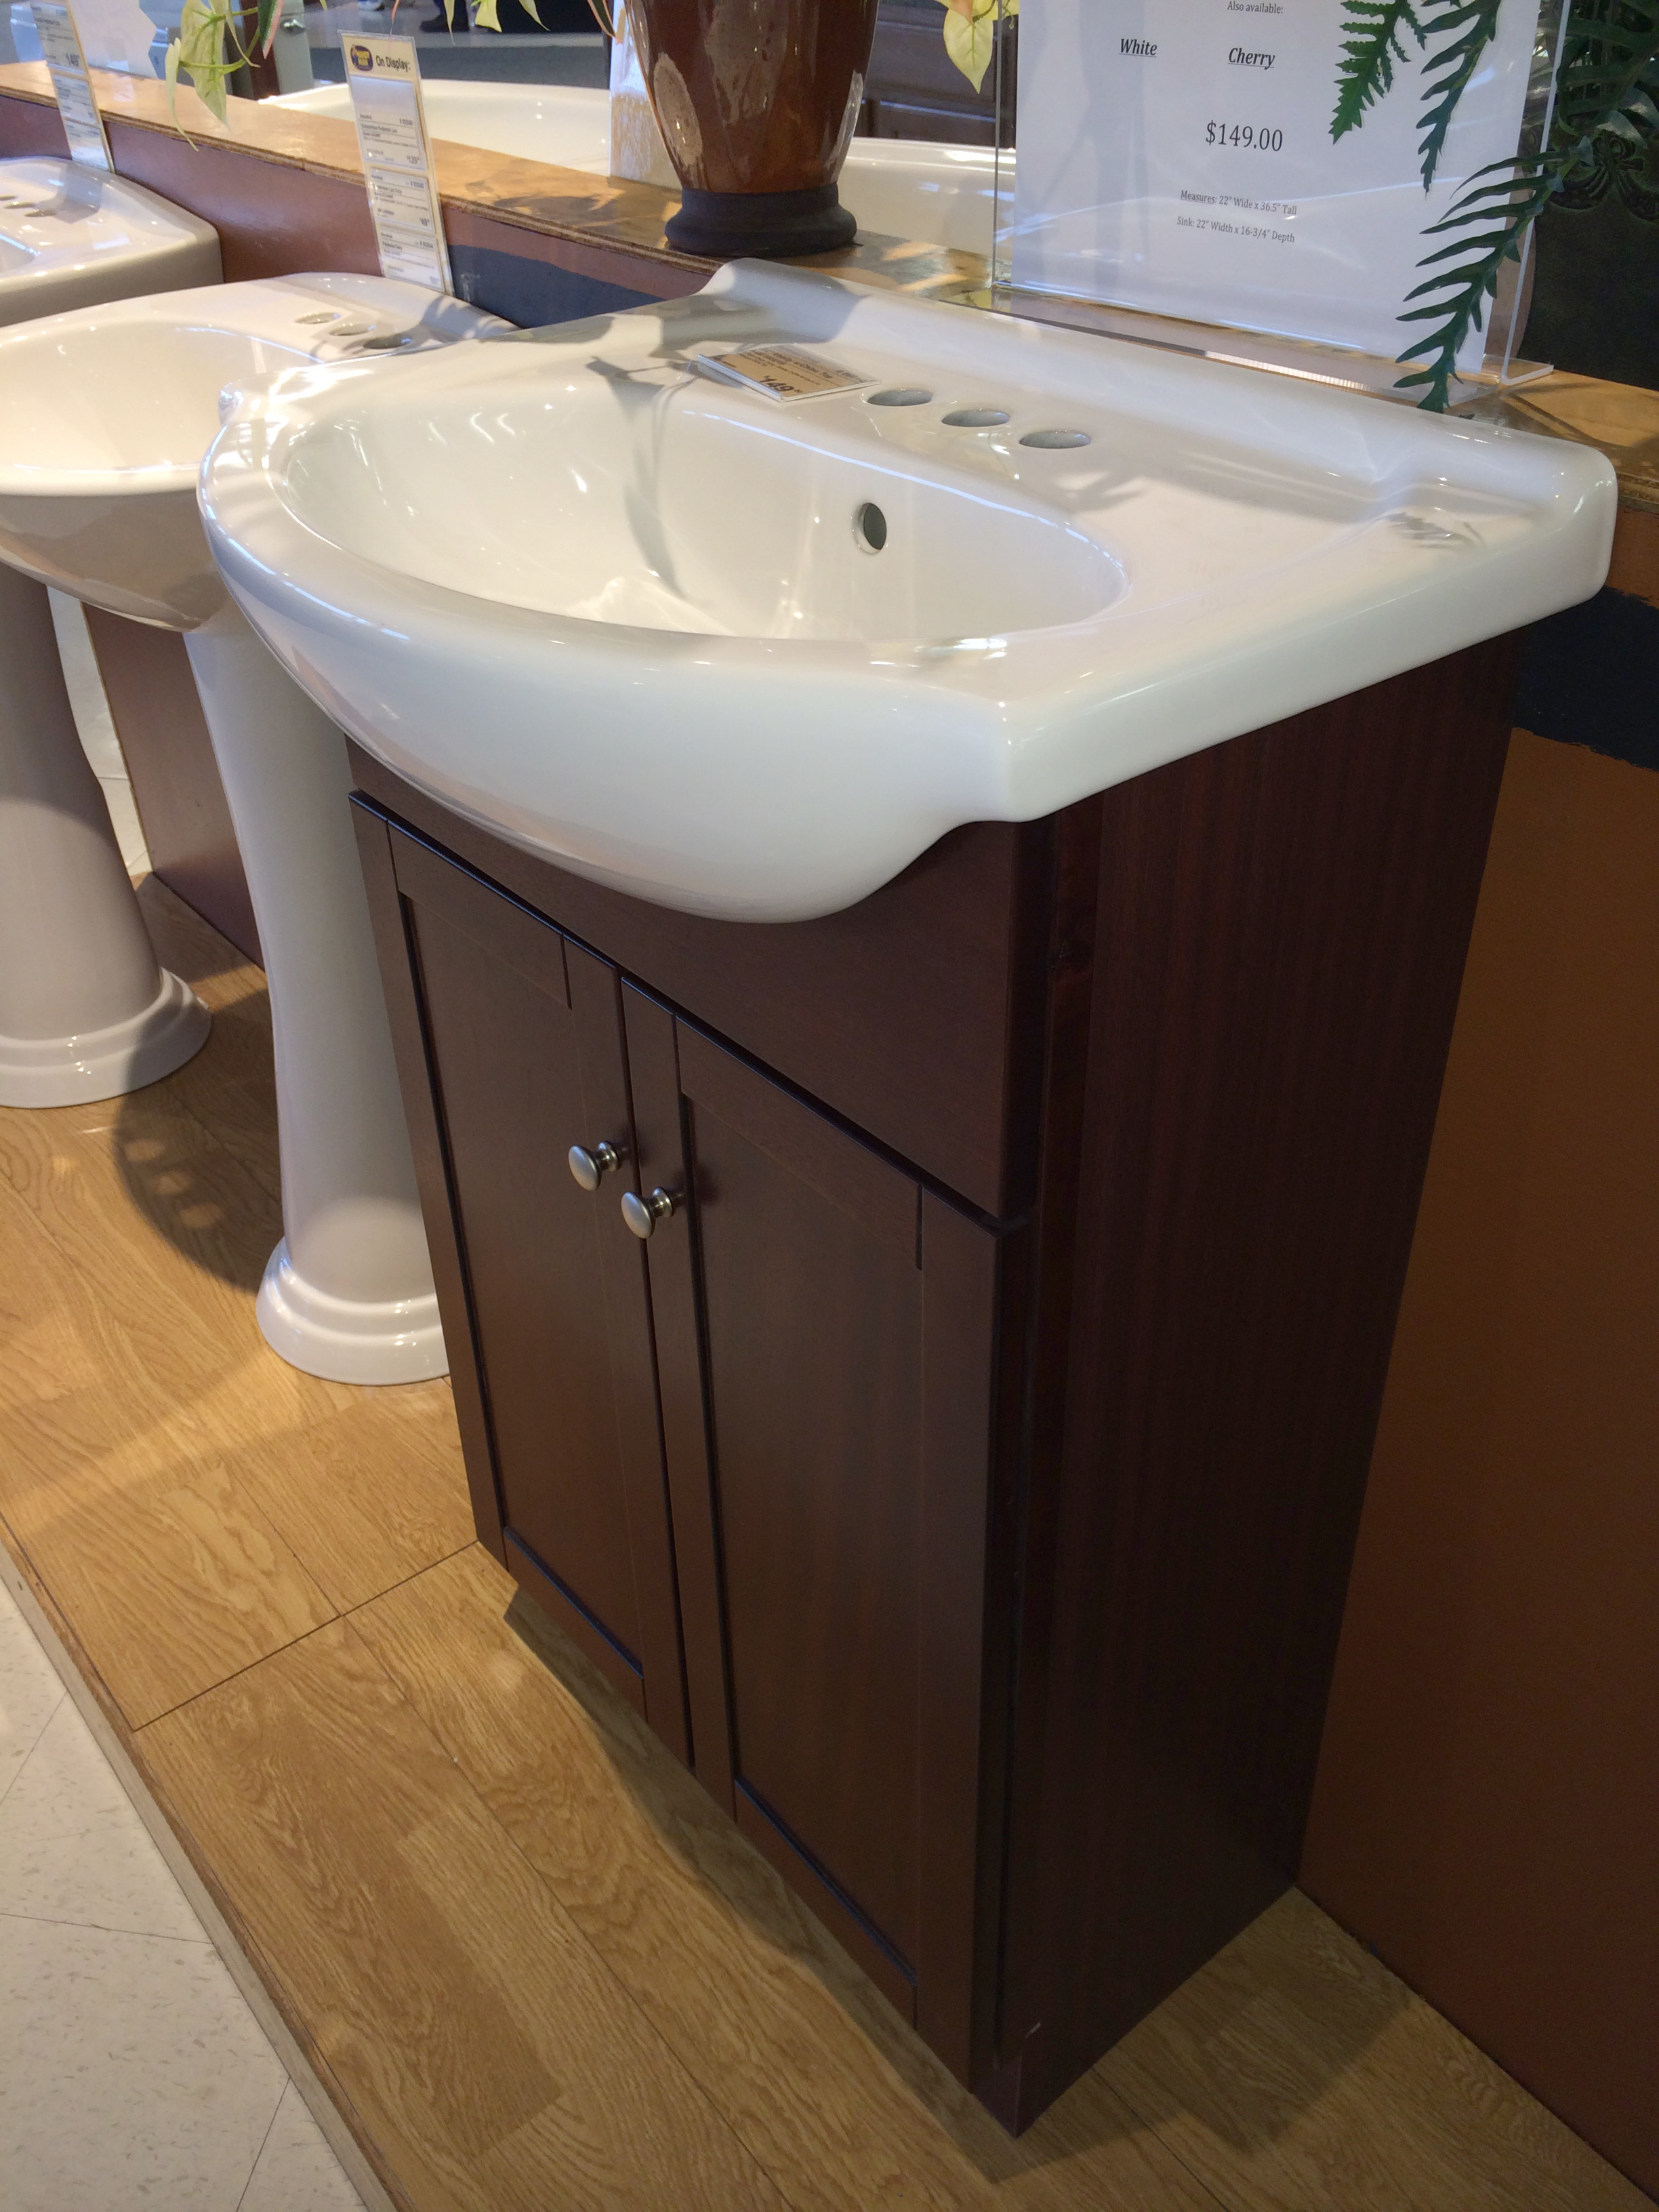 Bathroom Lavatory Sink Different Types Of Sinks Bathroom Lavatory Pedestal Sink